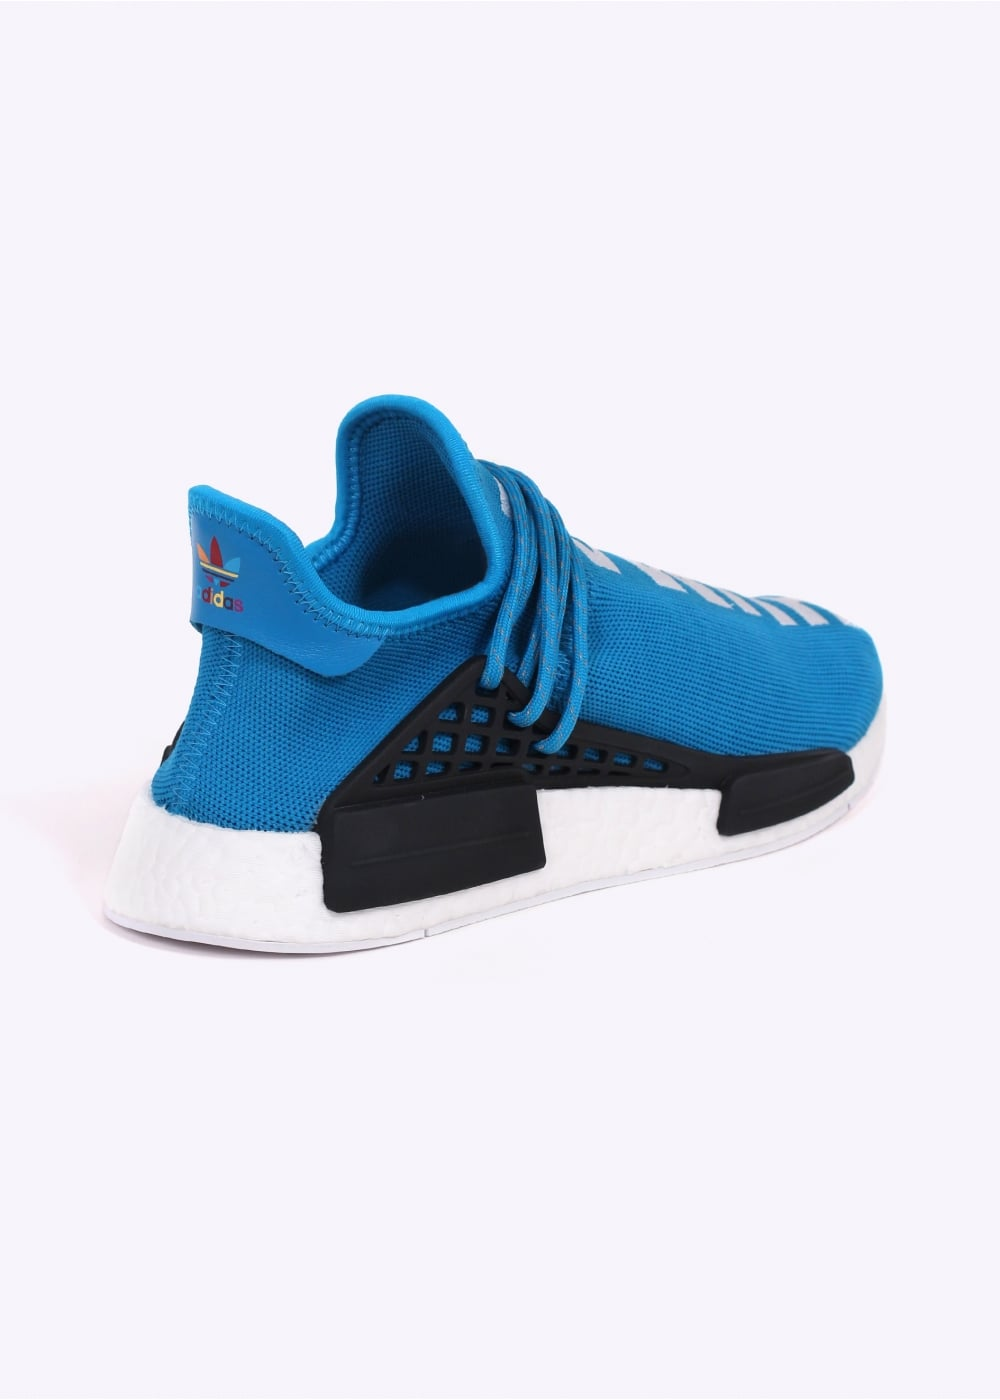 on sale 2133c c77ec adidas Originals Footwear x PW Human Race NMD - Light Blue